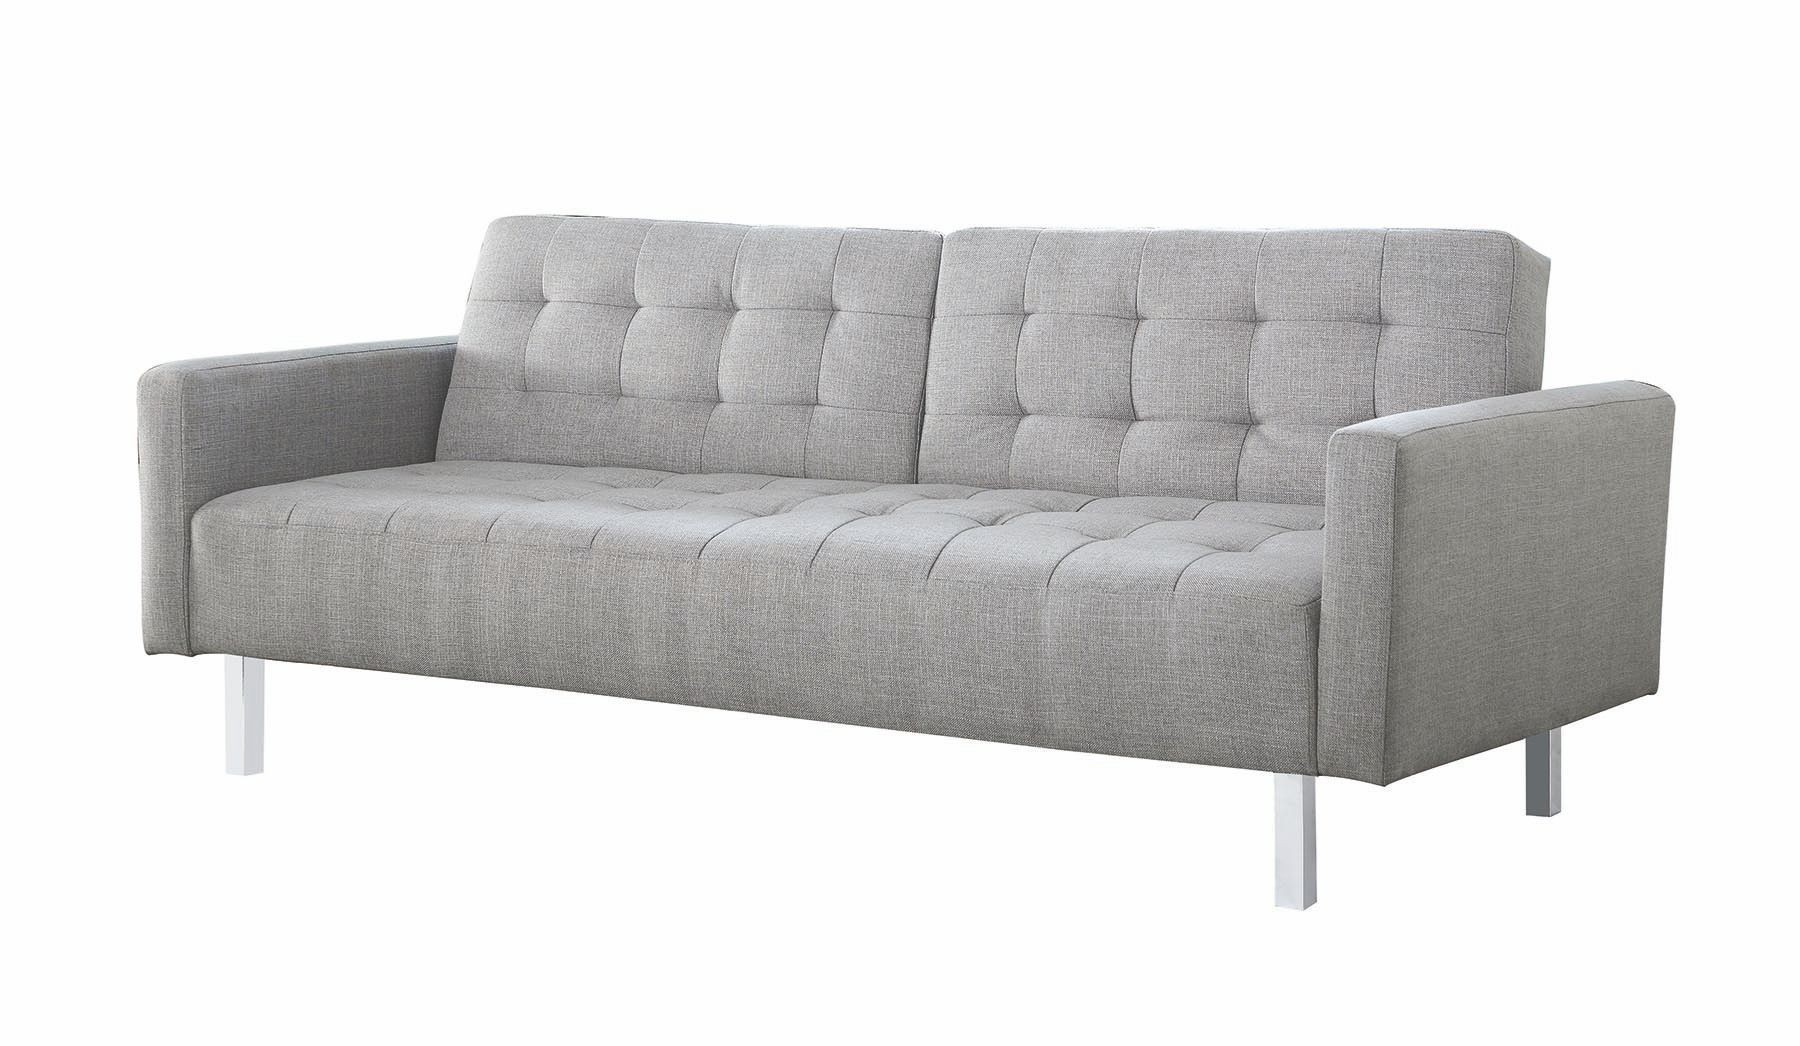 Light grey sofa bed from coaster coleman furniture for Sofa bed grey